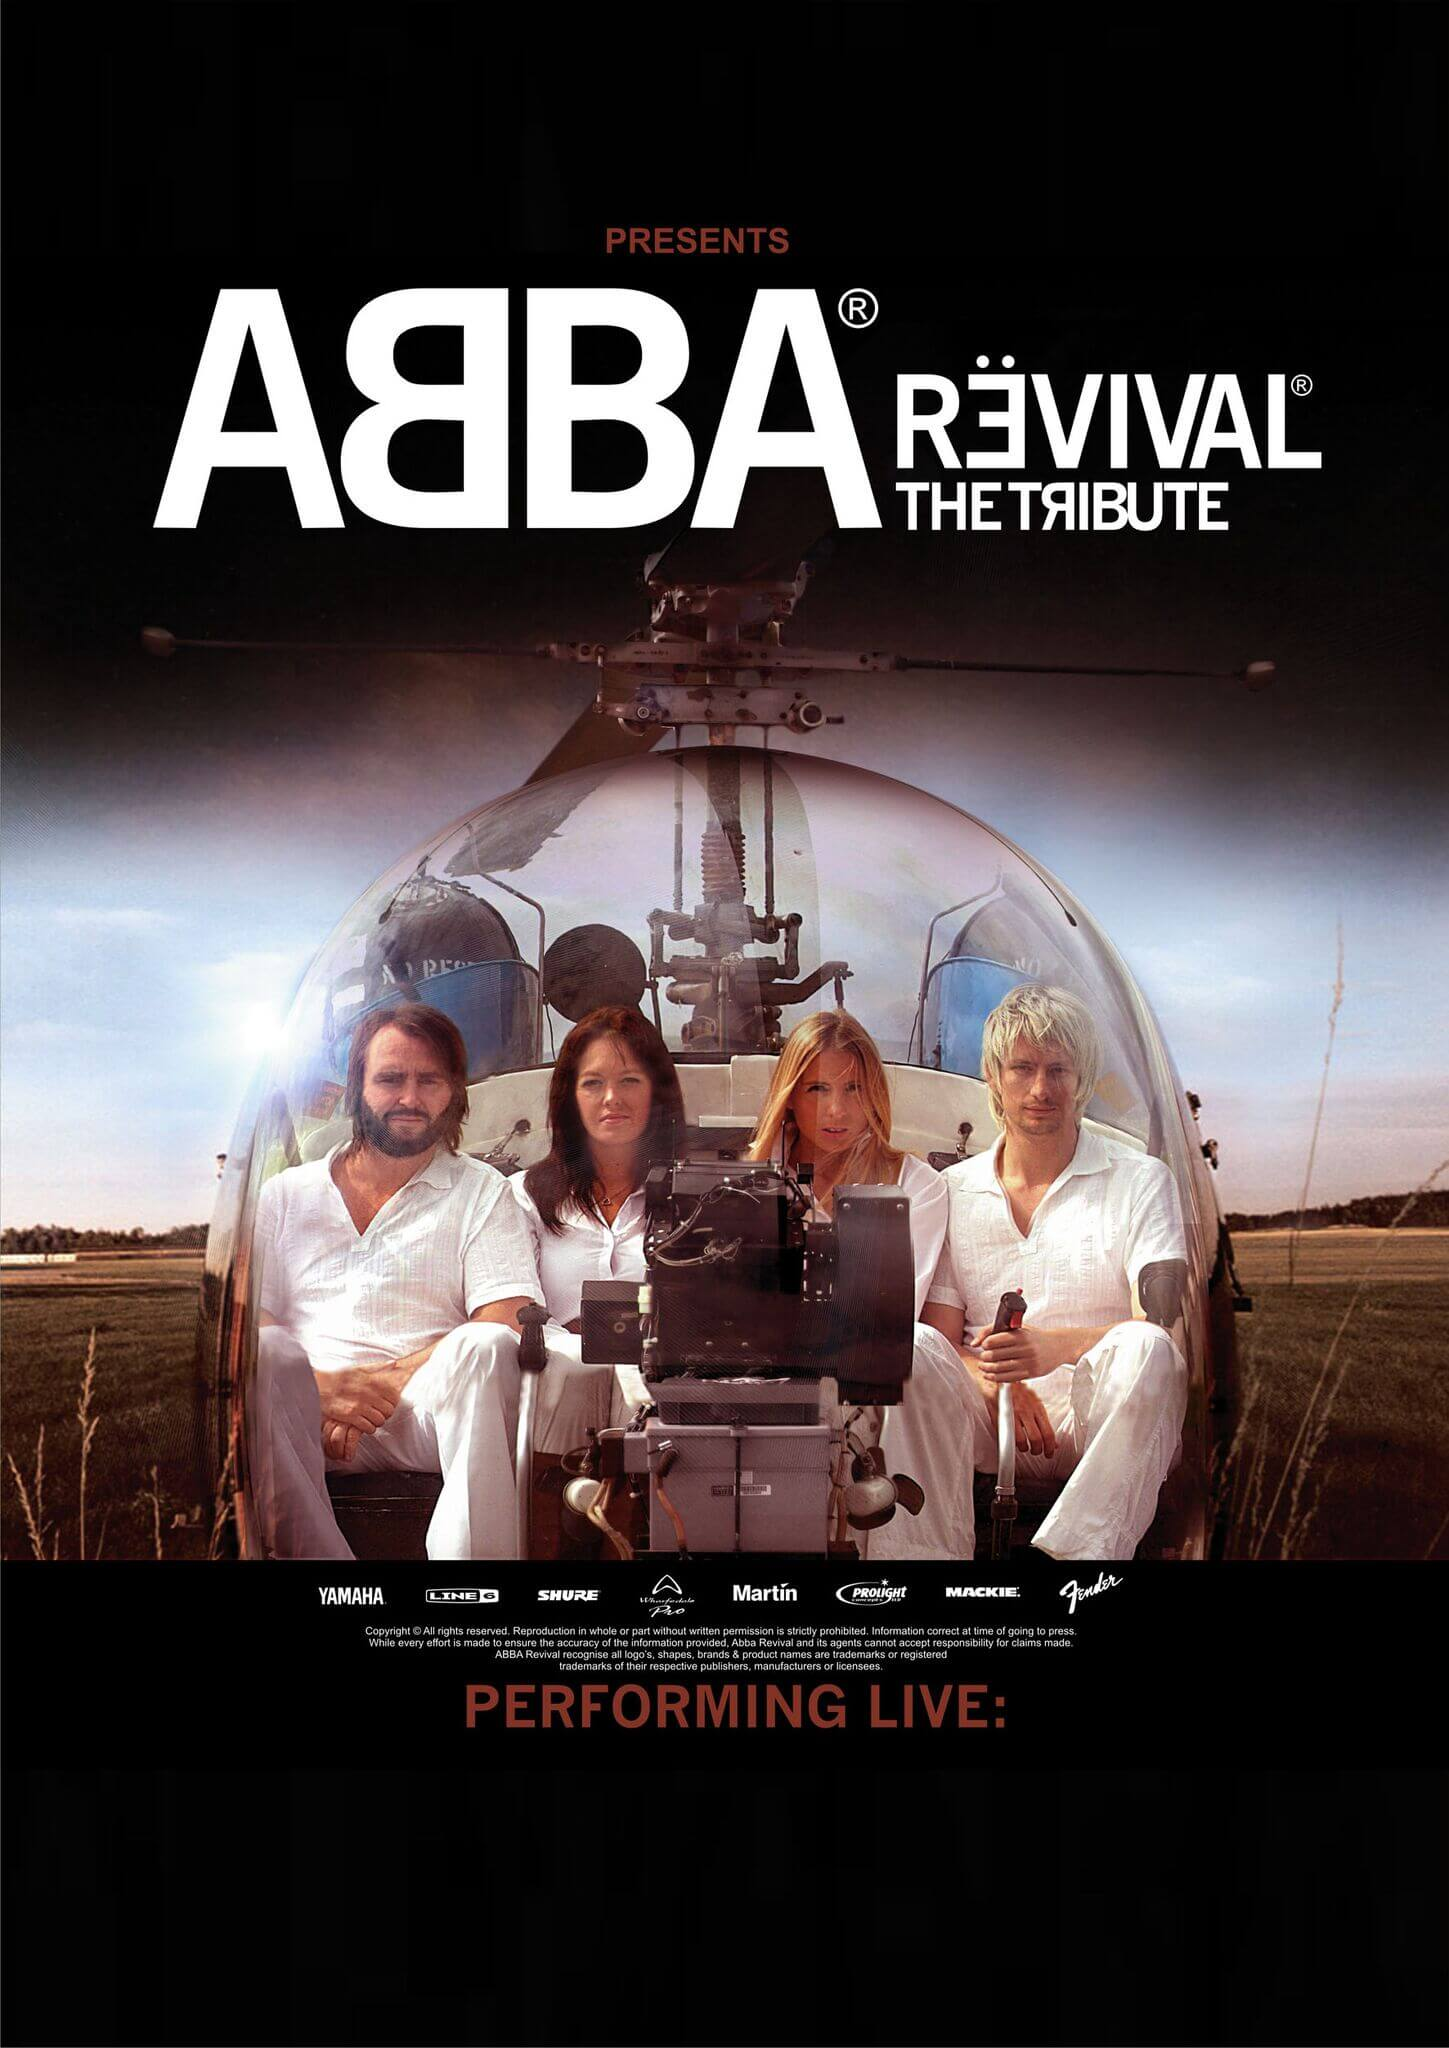 Abba Revival - The Tribute